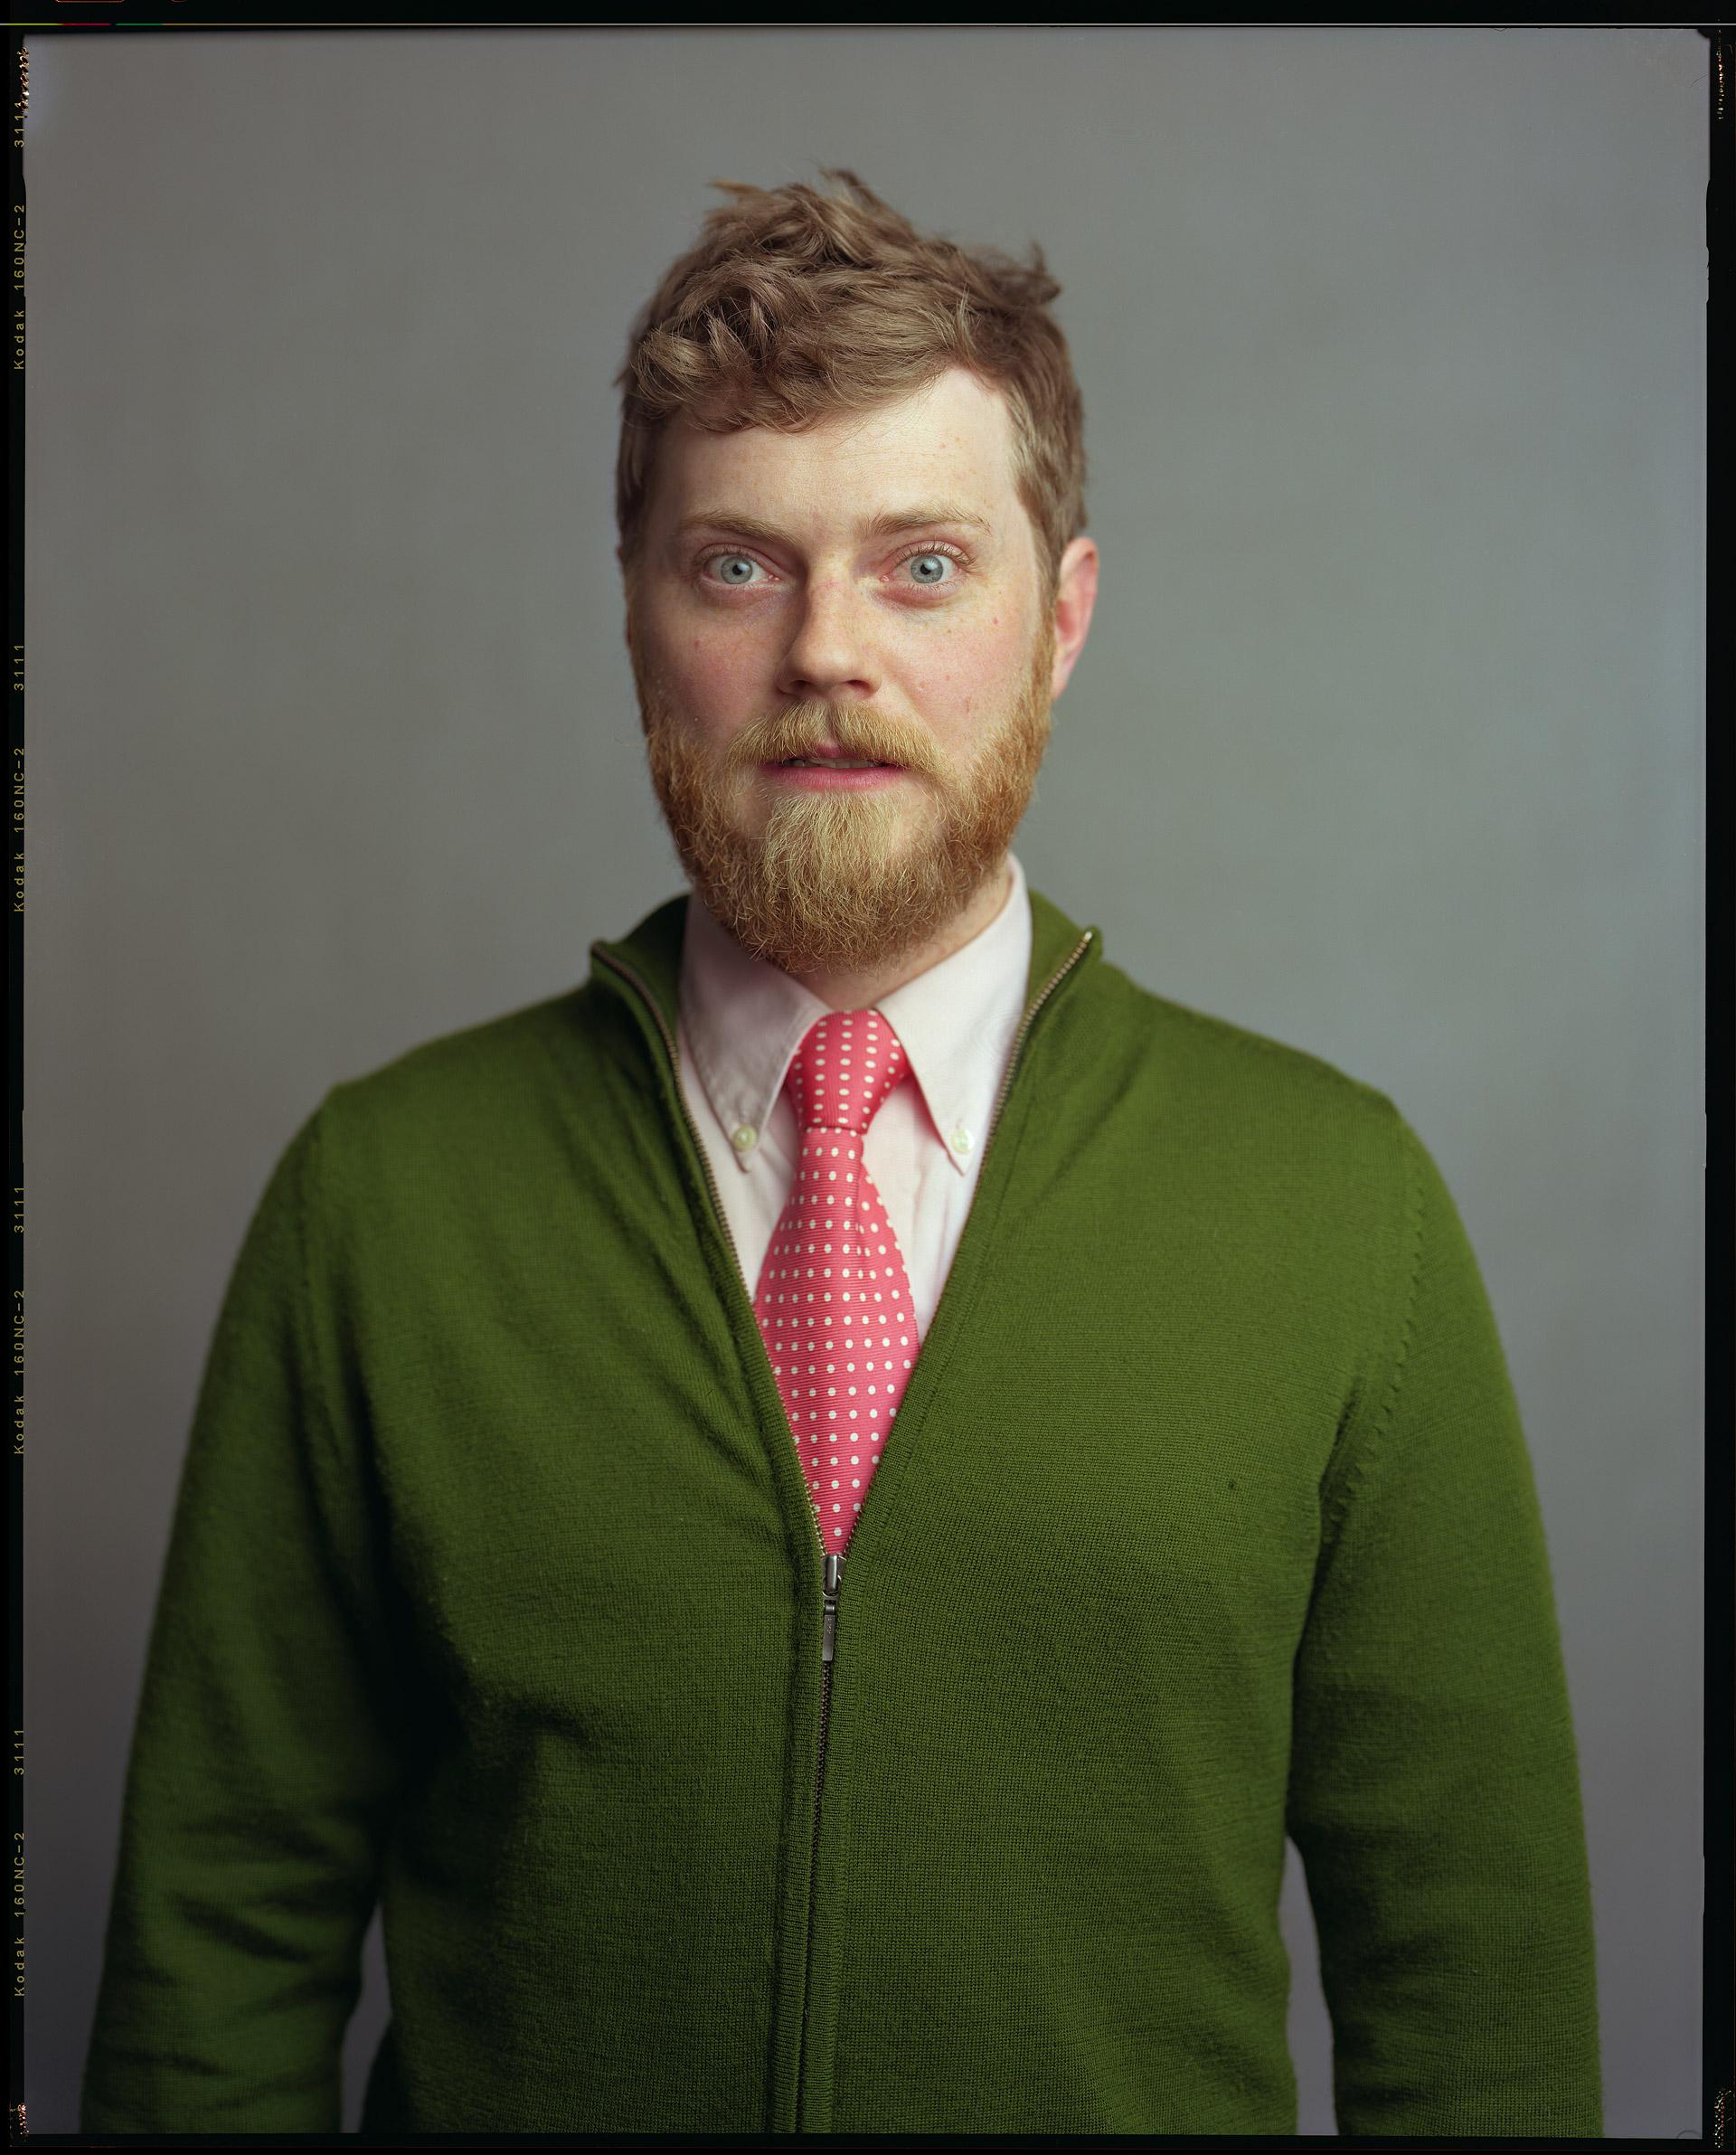 A pale-skinned person with red hair and a red beard and mustache is wearing a green zip-up sweater and pink tie.